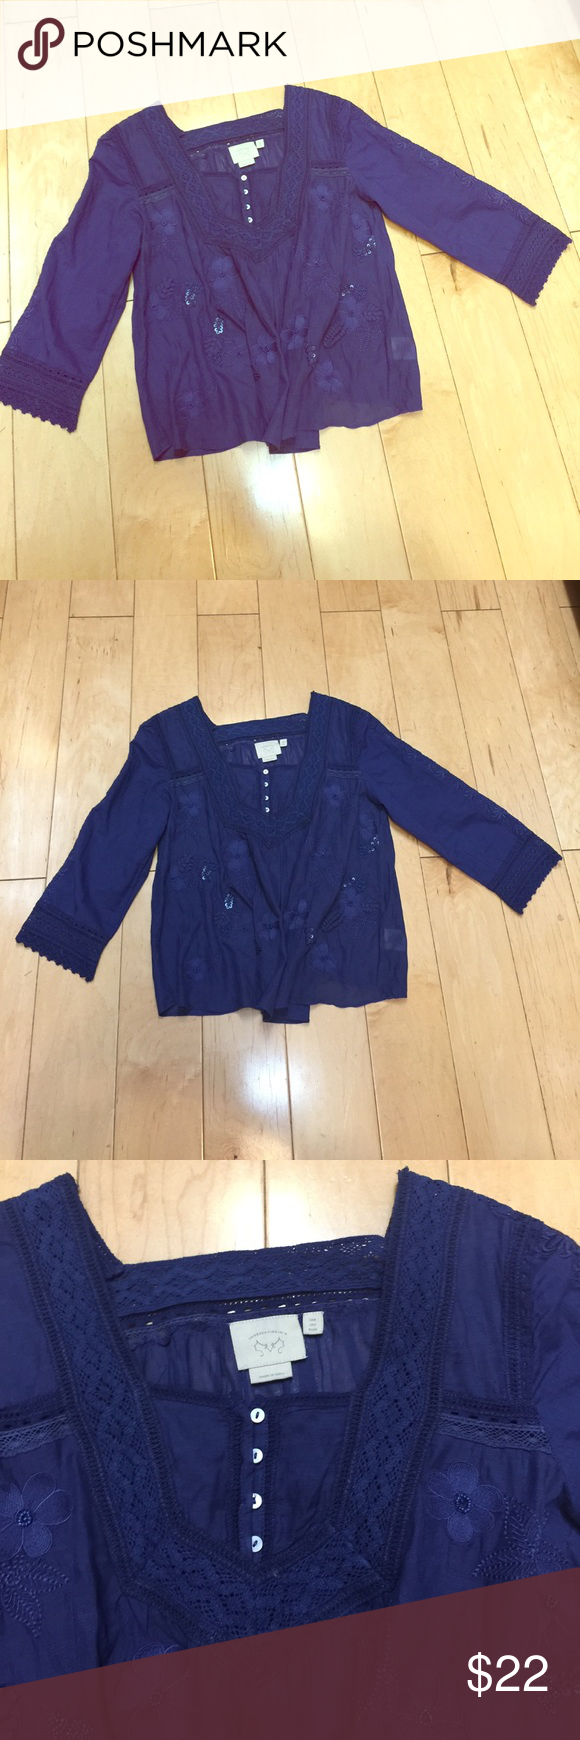 Anthropologie blouse top navy blue wide embroid Anthropologie top blouse . Beautiful details with beads and embroidery. EUC like worn once. Wide ( flares considerably from Brest like down). Size 4. Very beautiful! Anthropologie Tops Blouses